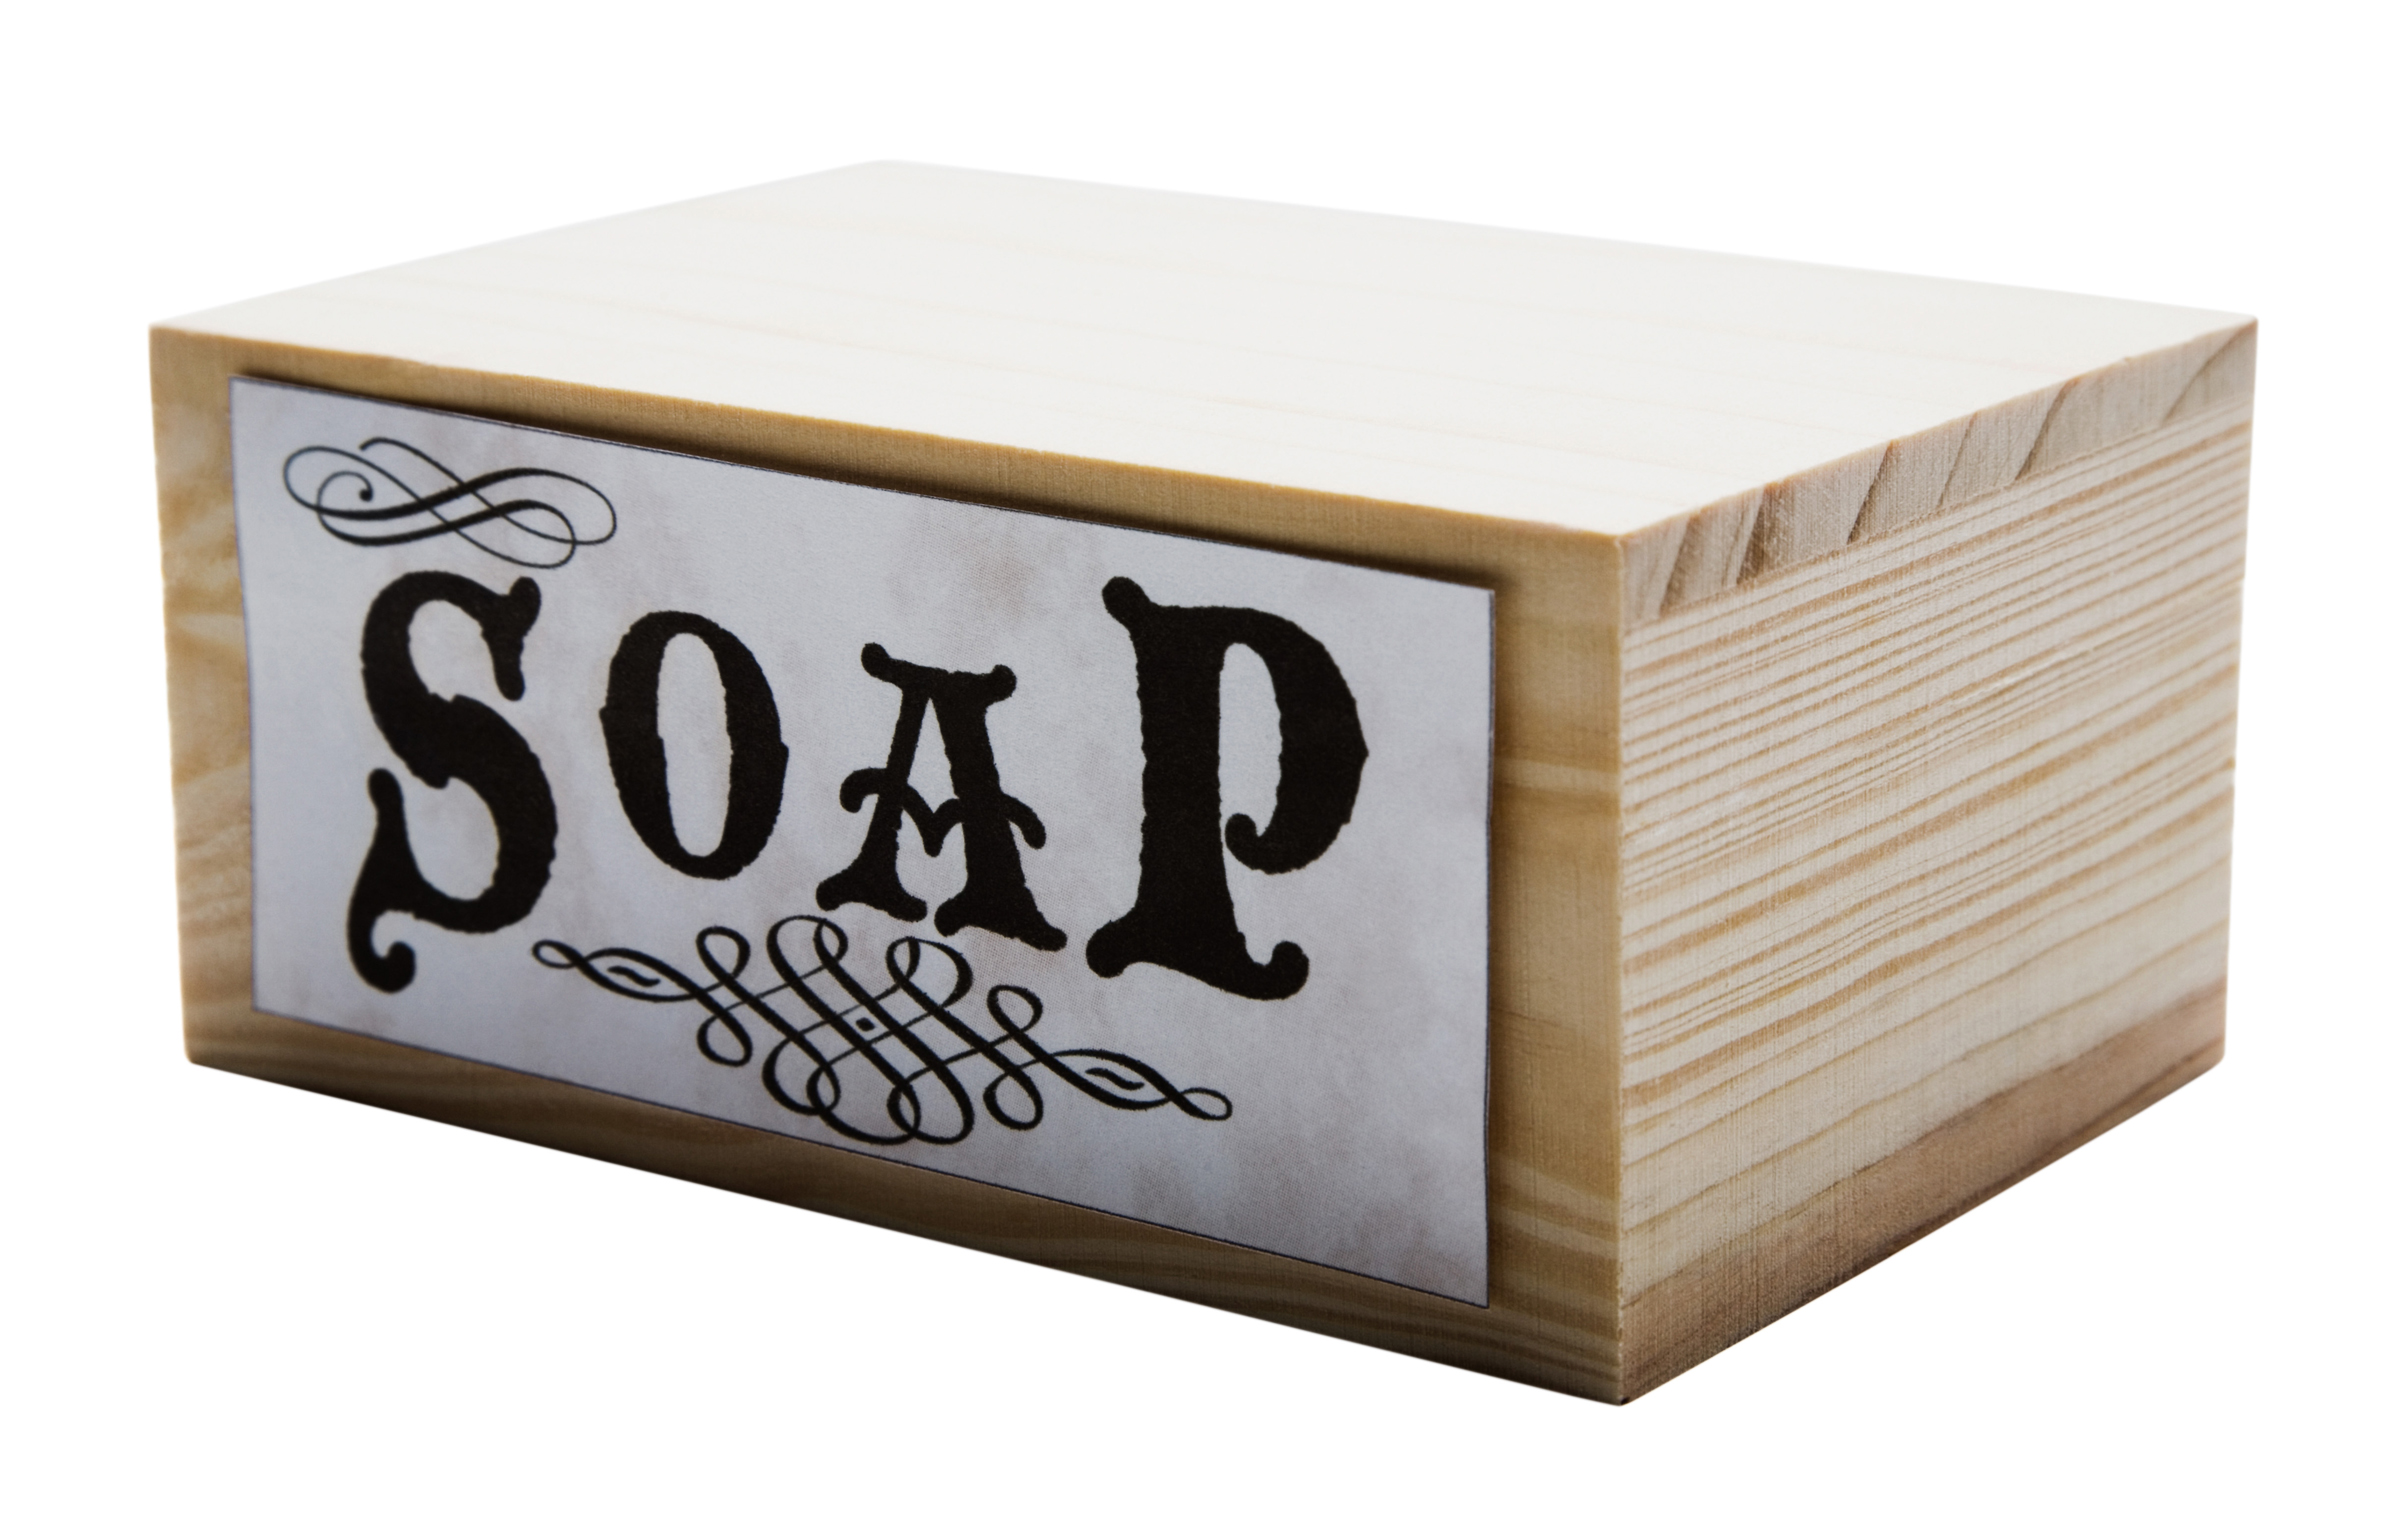 I've dusted off my soap box!